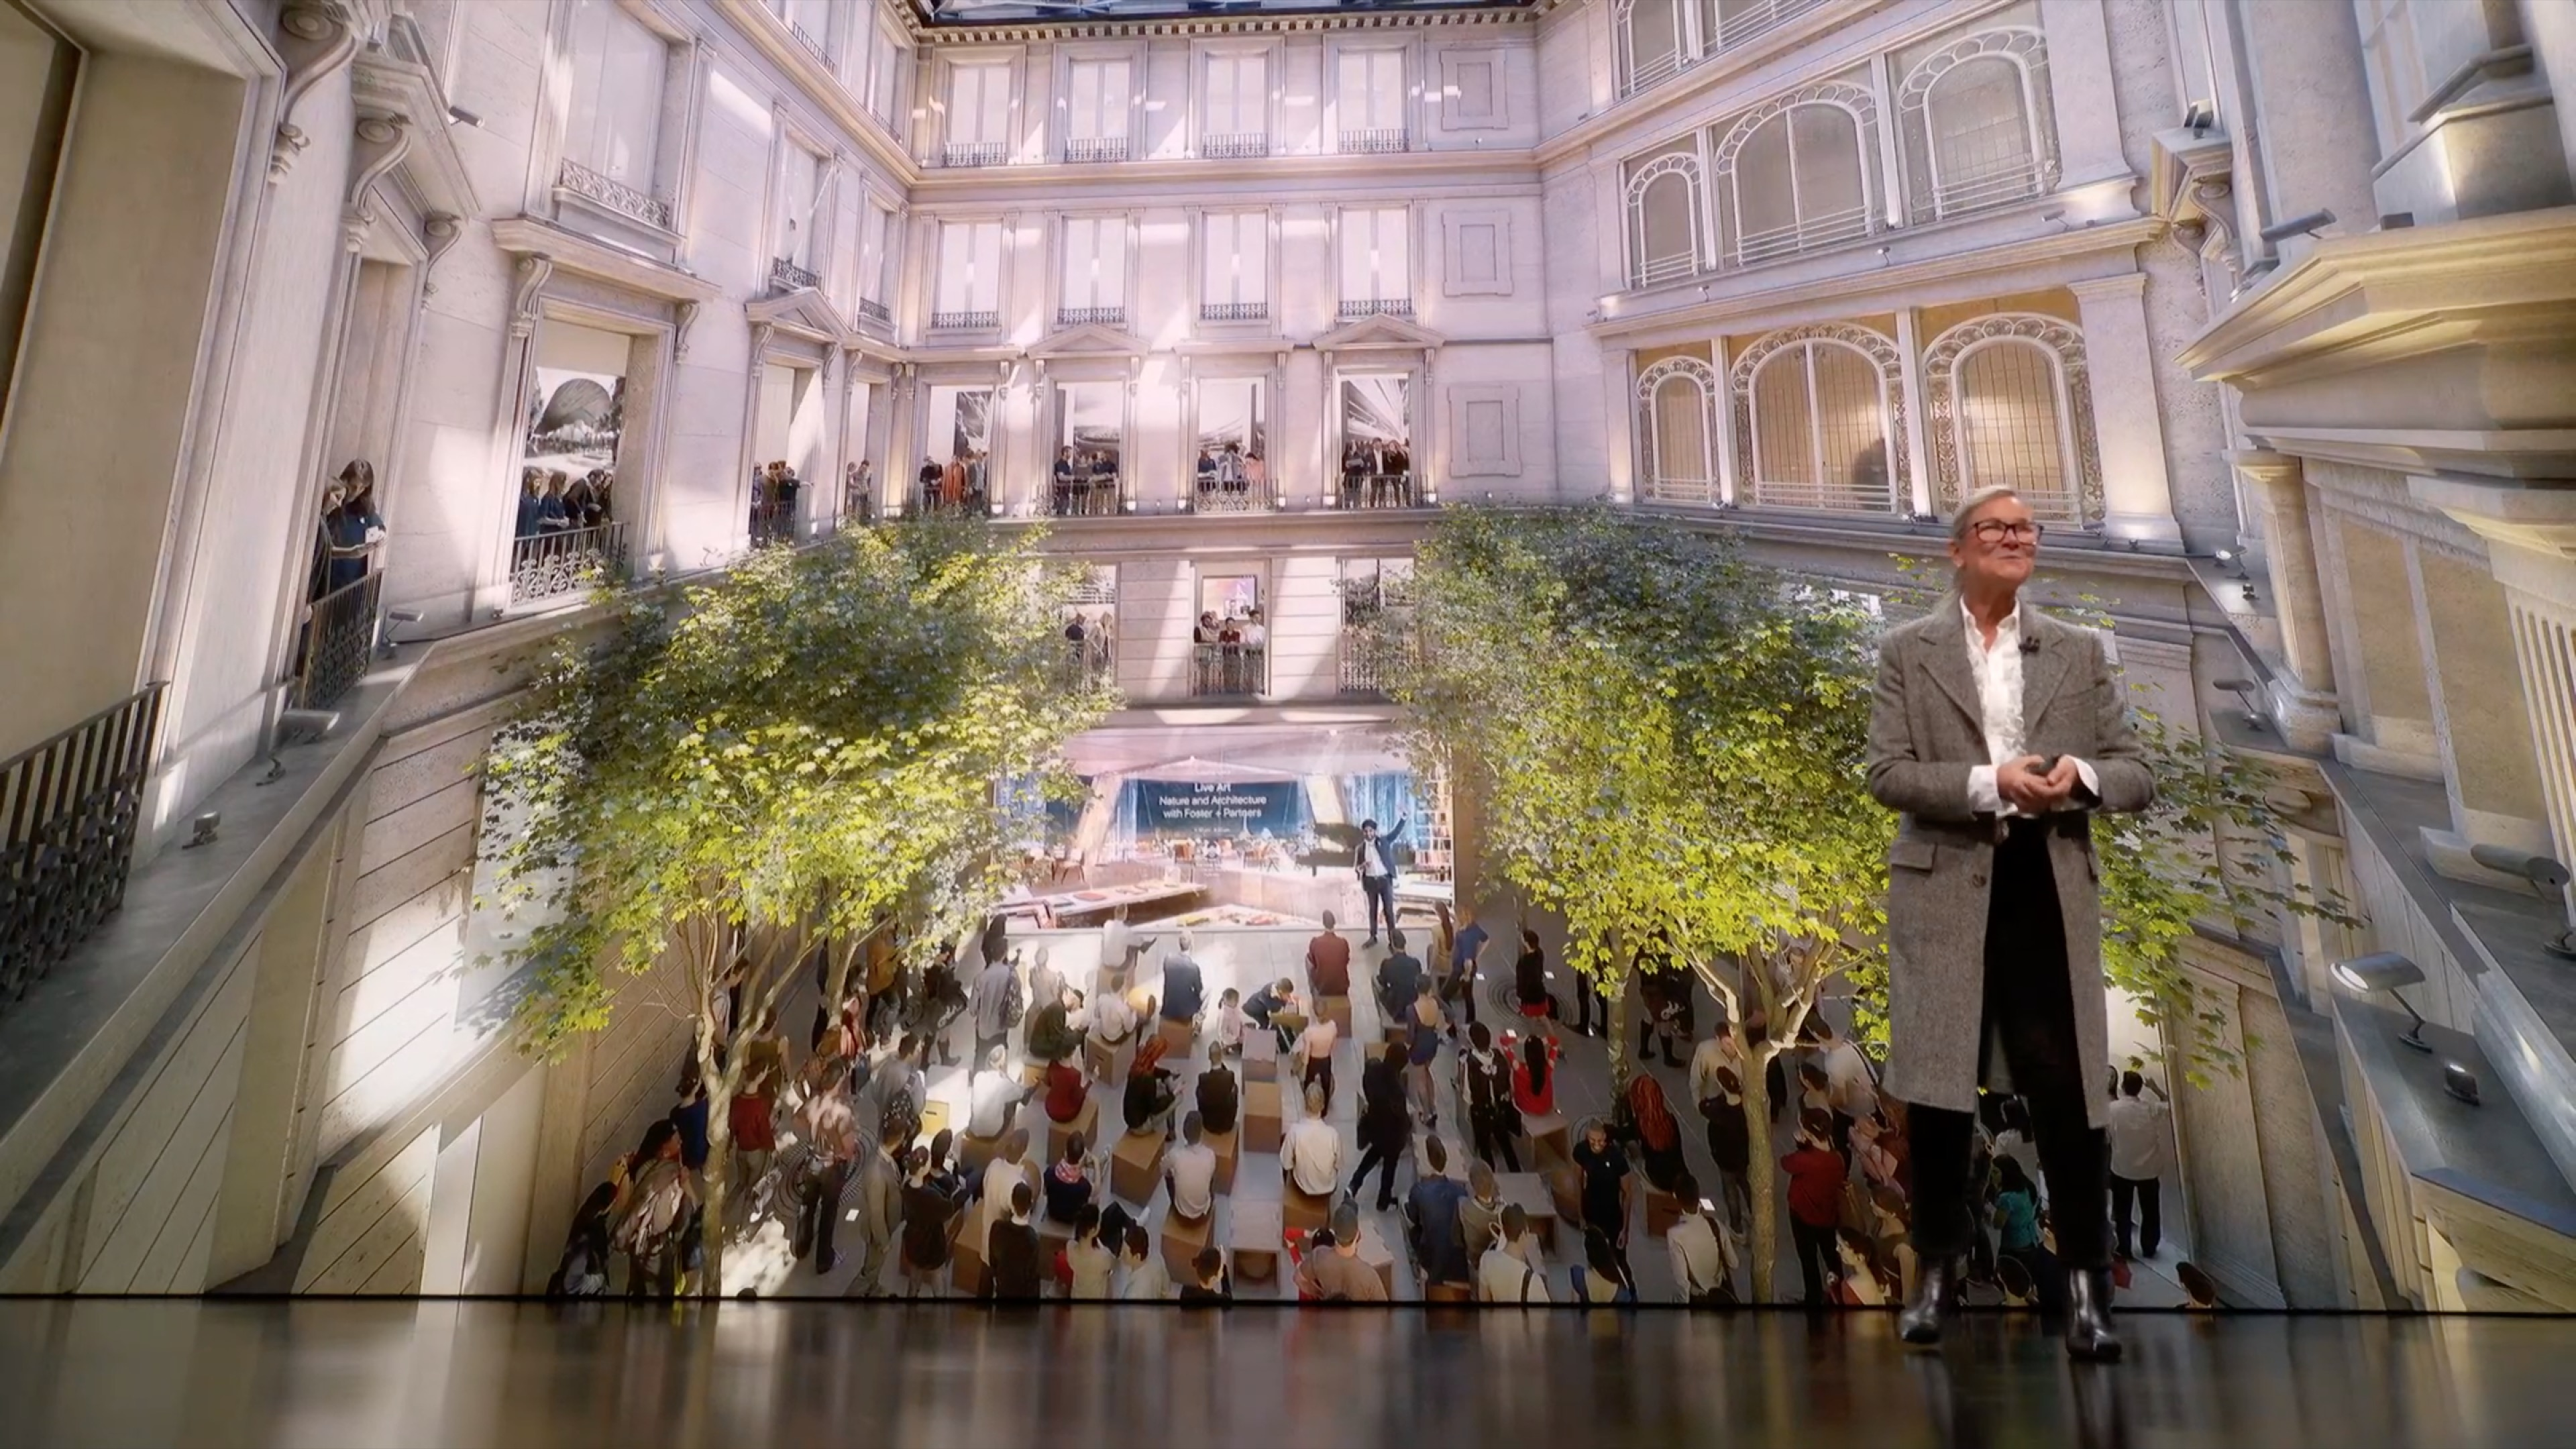 apple promotes creativity at upcoming champs Élysées store open to